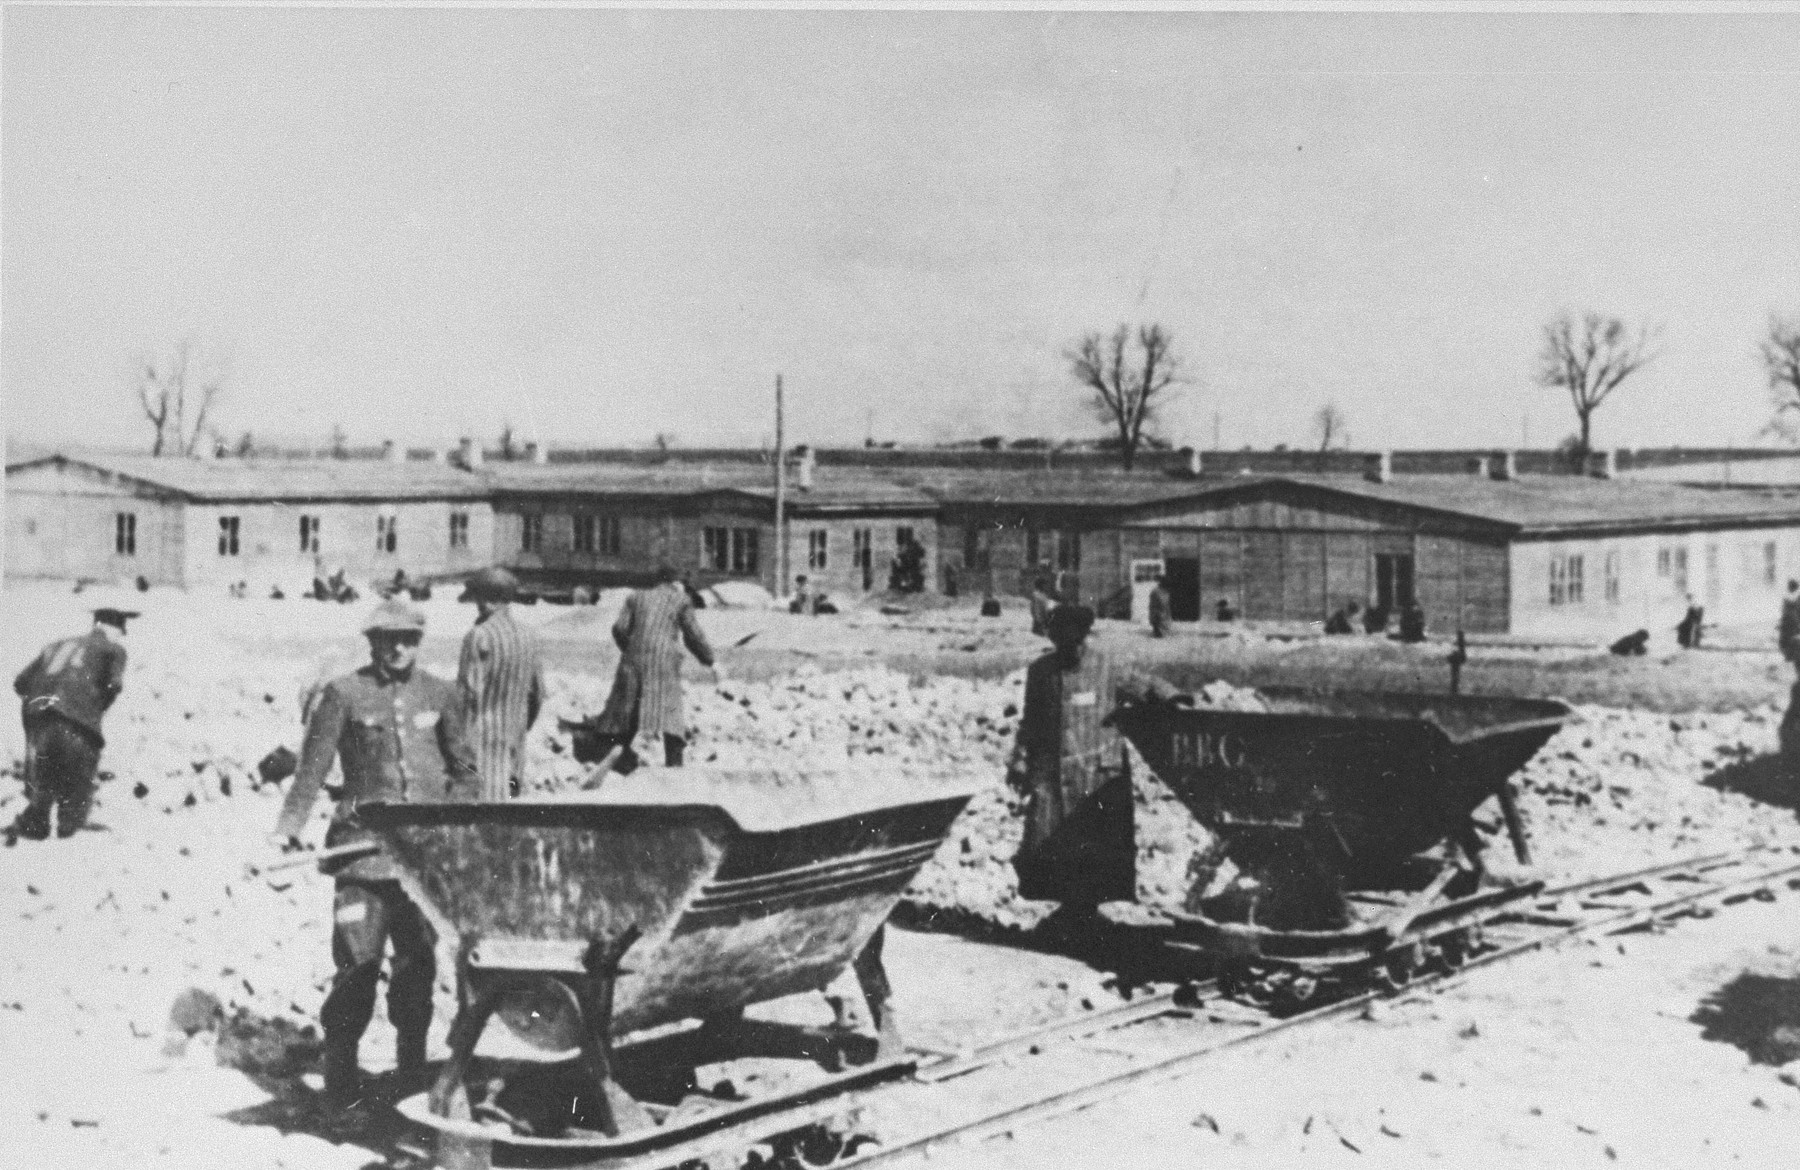 Prisoners at forced labor at the Majdanek concentration camp.